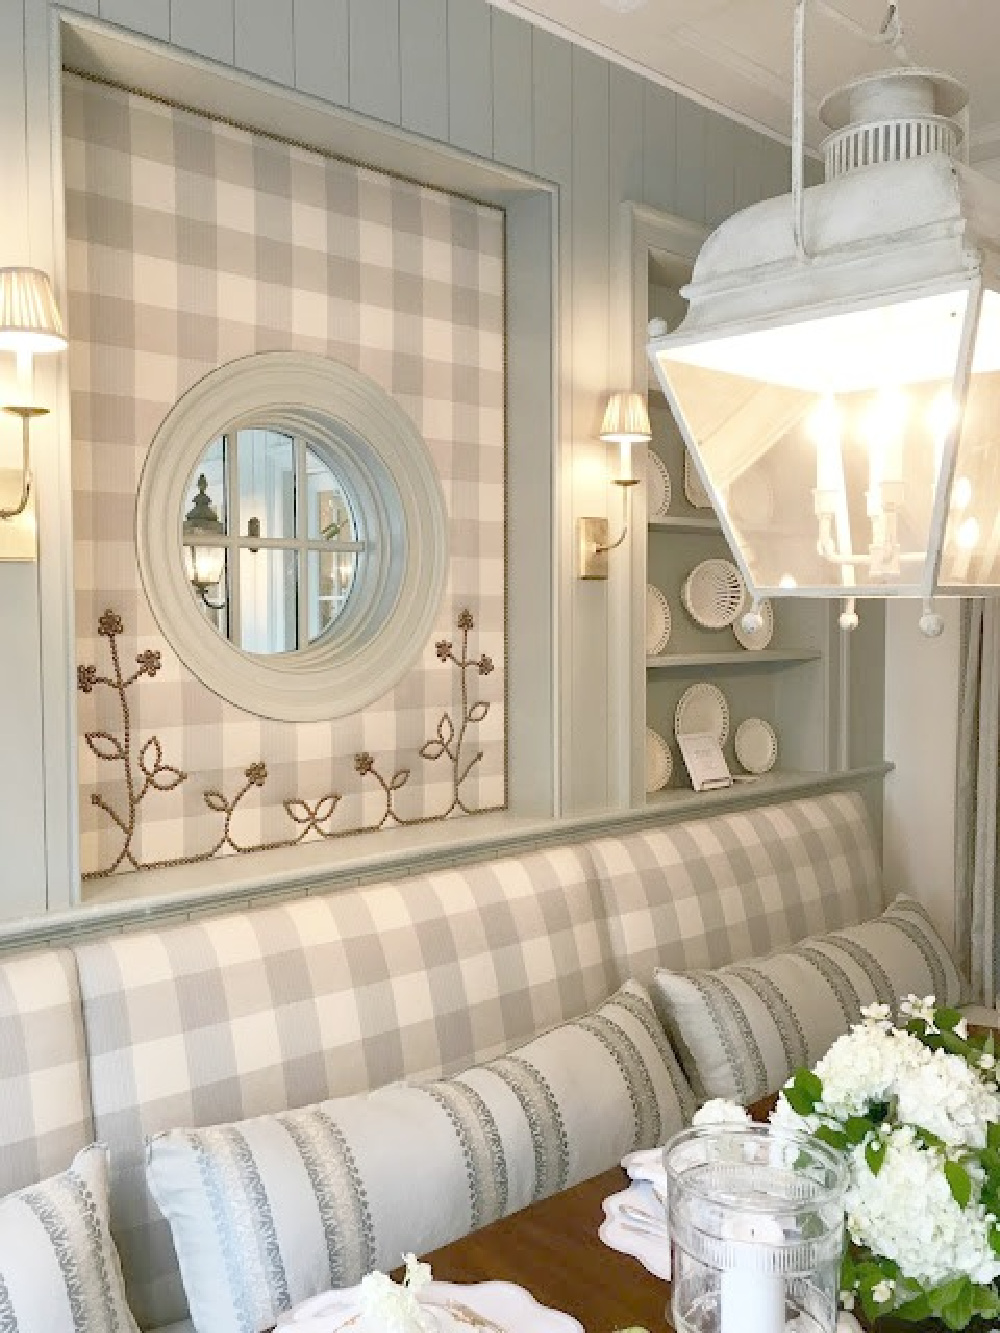 Blue and white Buffalo check upolstered wall and banquette in traditional kitchen breakfast room by Lauren DeLoach.  #buffalocheck #diningroom #interiordesign #lightblue #nailheadtrim #banquette #timelessdesign #traditionalstyle